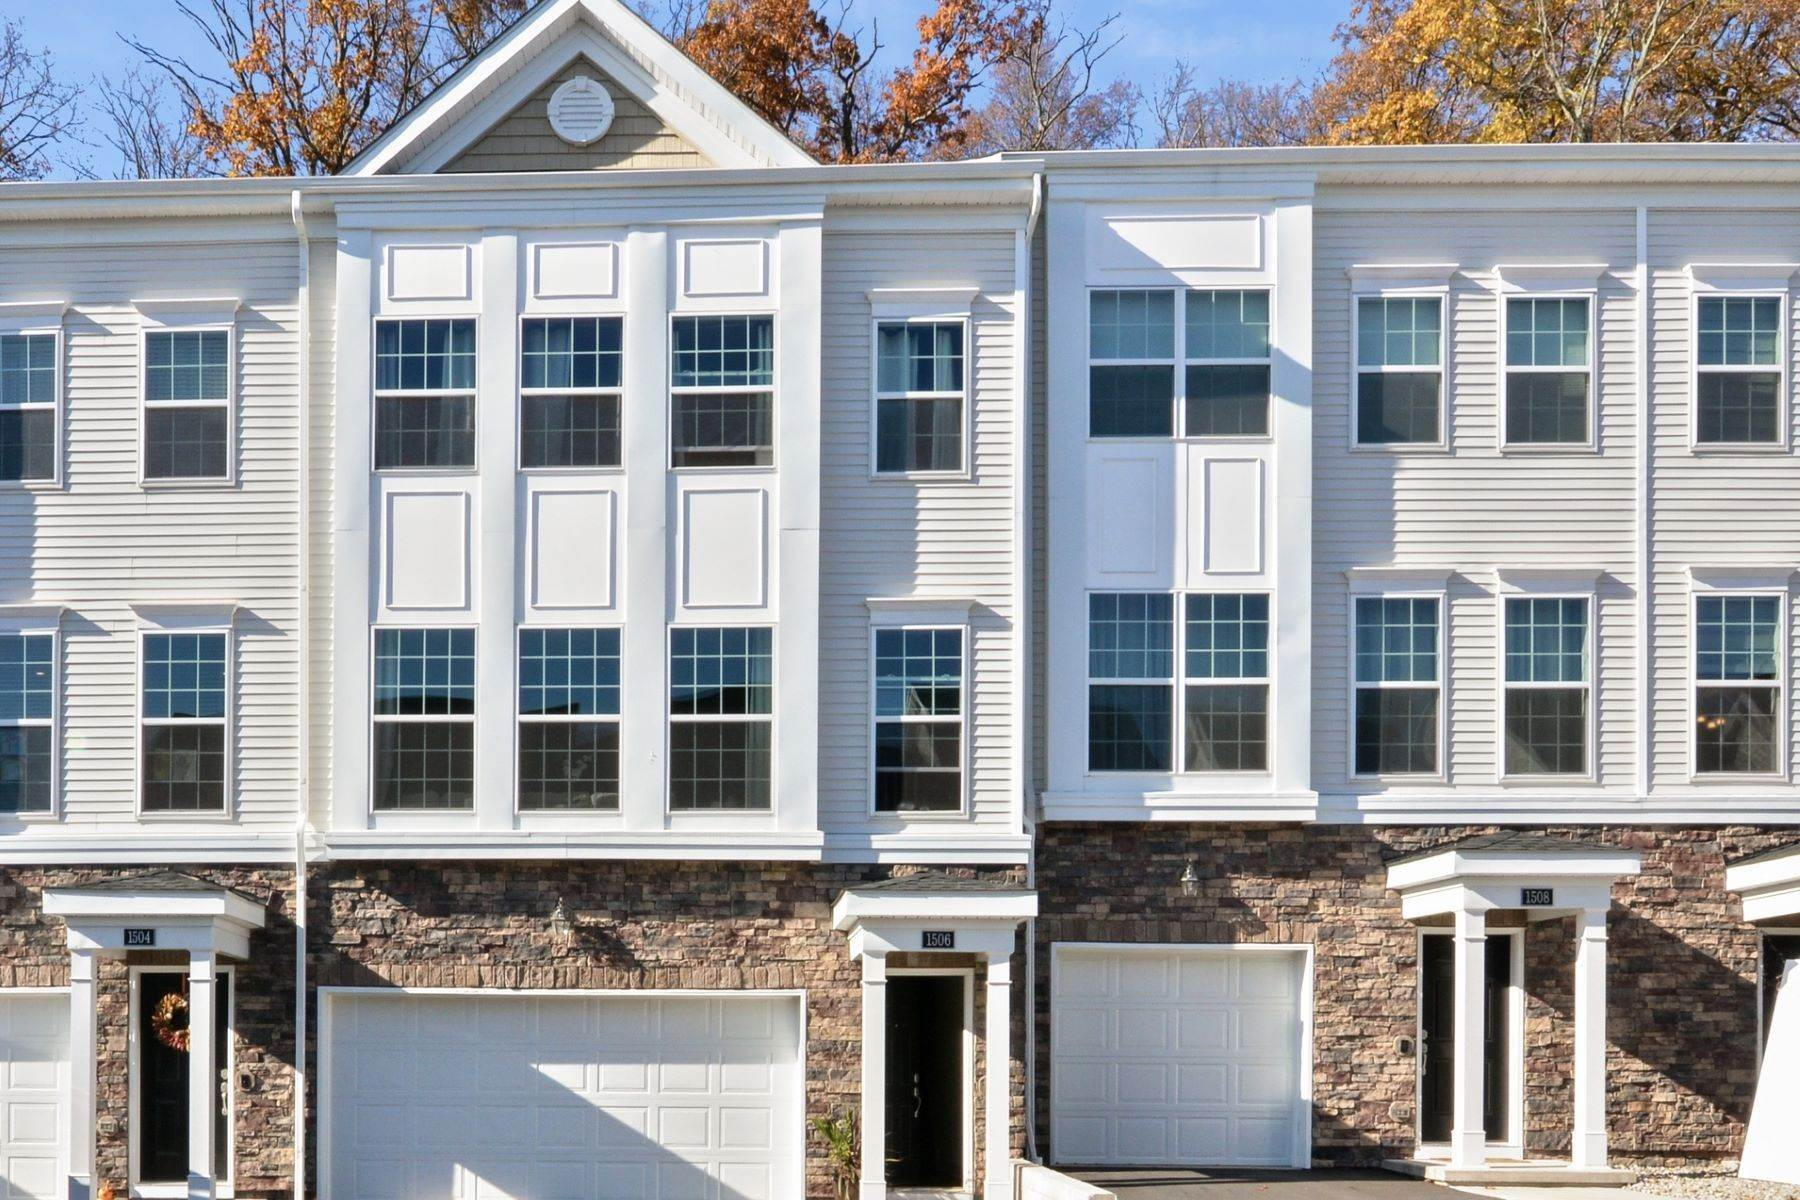 townhouses for Sale at 1506 Parkview Lane, Rockaway Twp, NJ 07866 1506 Parkview Lane Rockaway Township, New Jersey 07266 United States